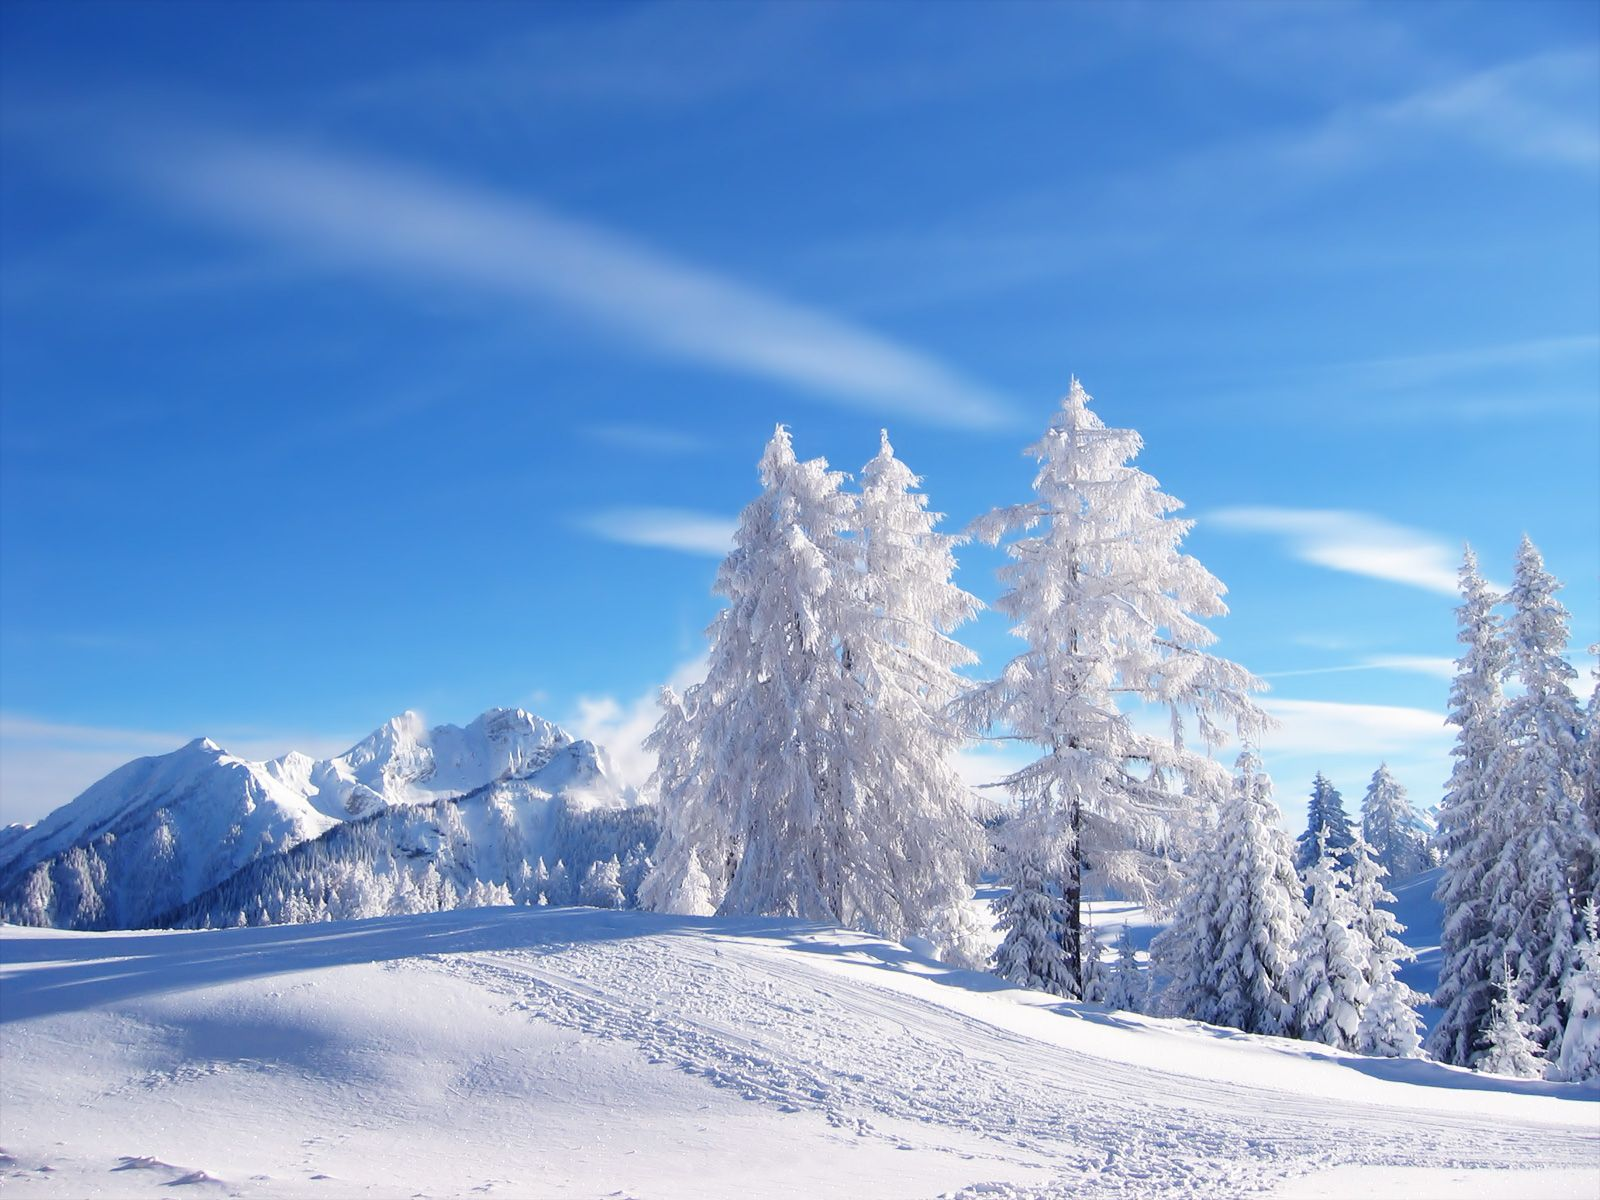 This Is What Narnia Looks Like In My Brain Winter Landscape Winter Nature Landscape Wallpaper